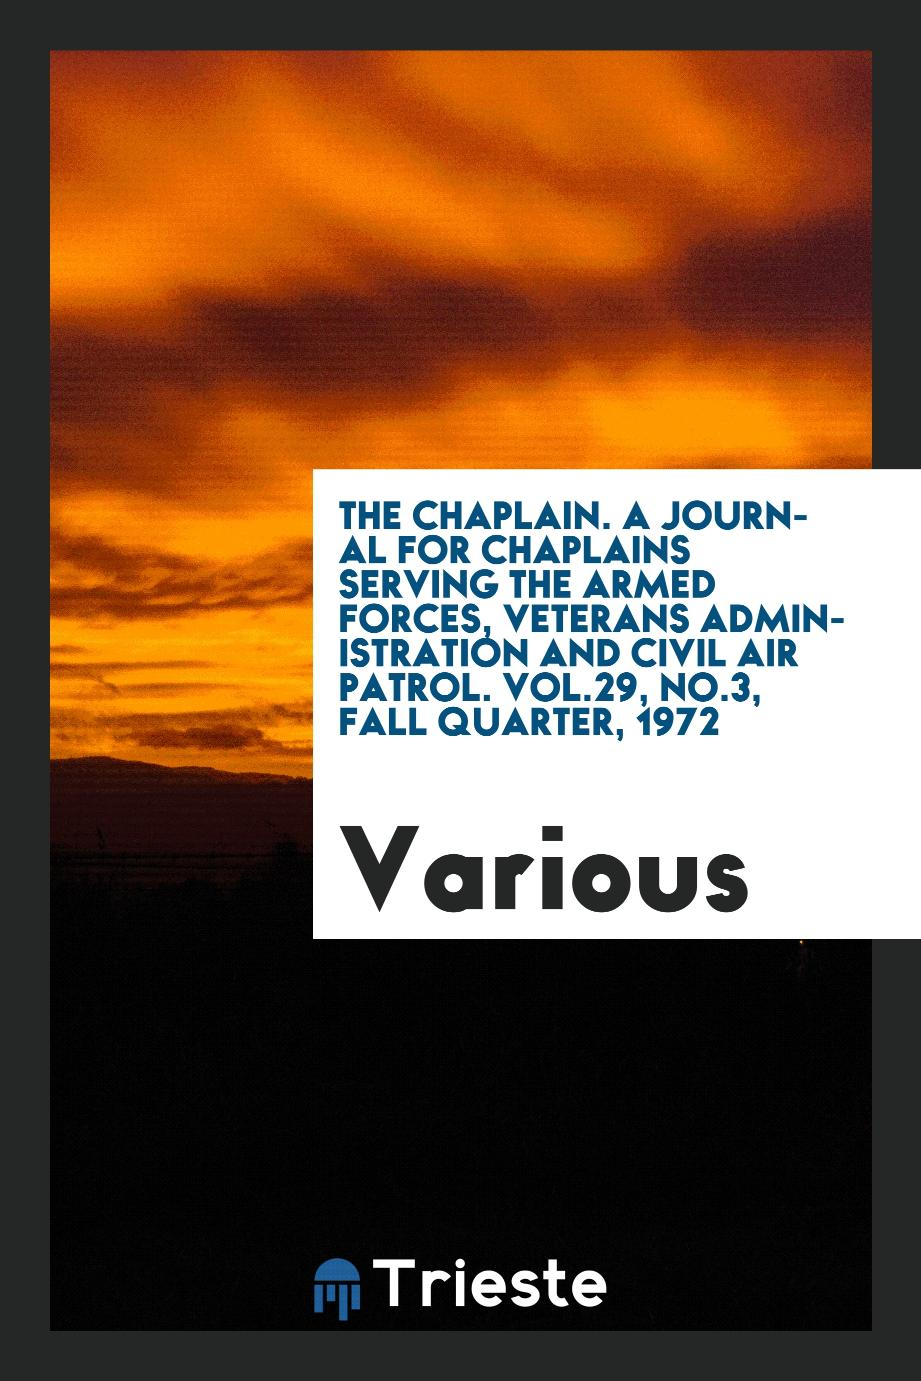 The Chaplain. A journal for chaplains serving the armed forces, veterans administration and civil air patrol. Vol.29, No.3, fall quarter, 1972